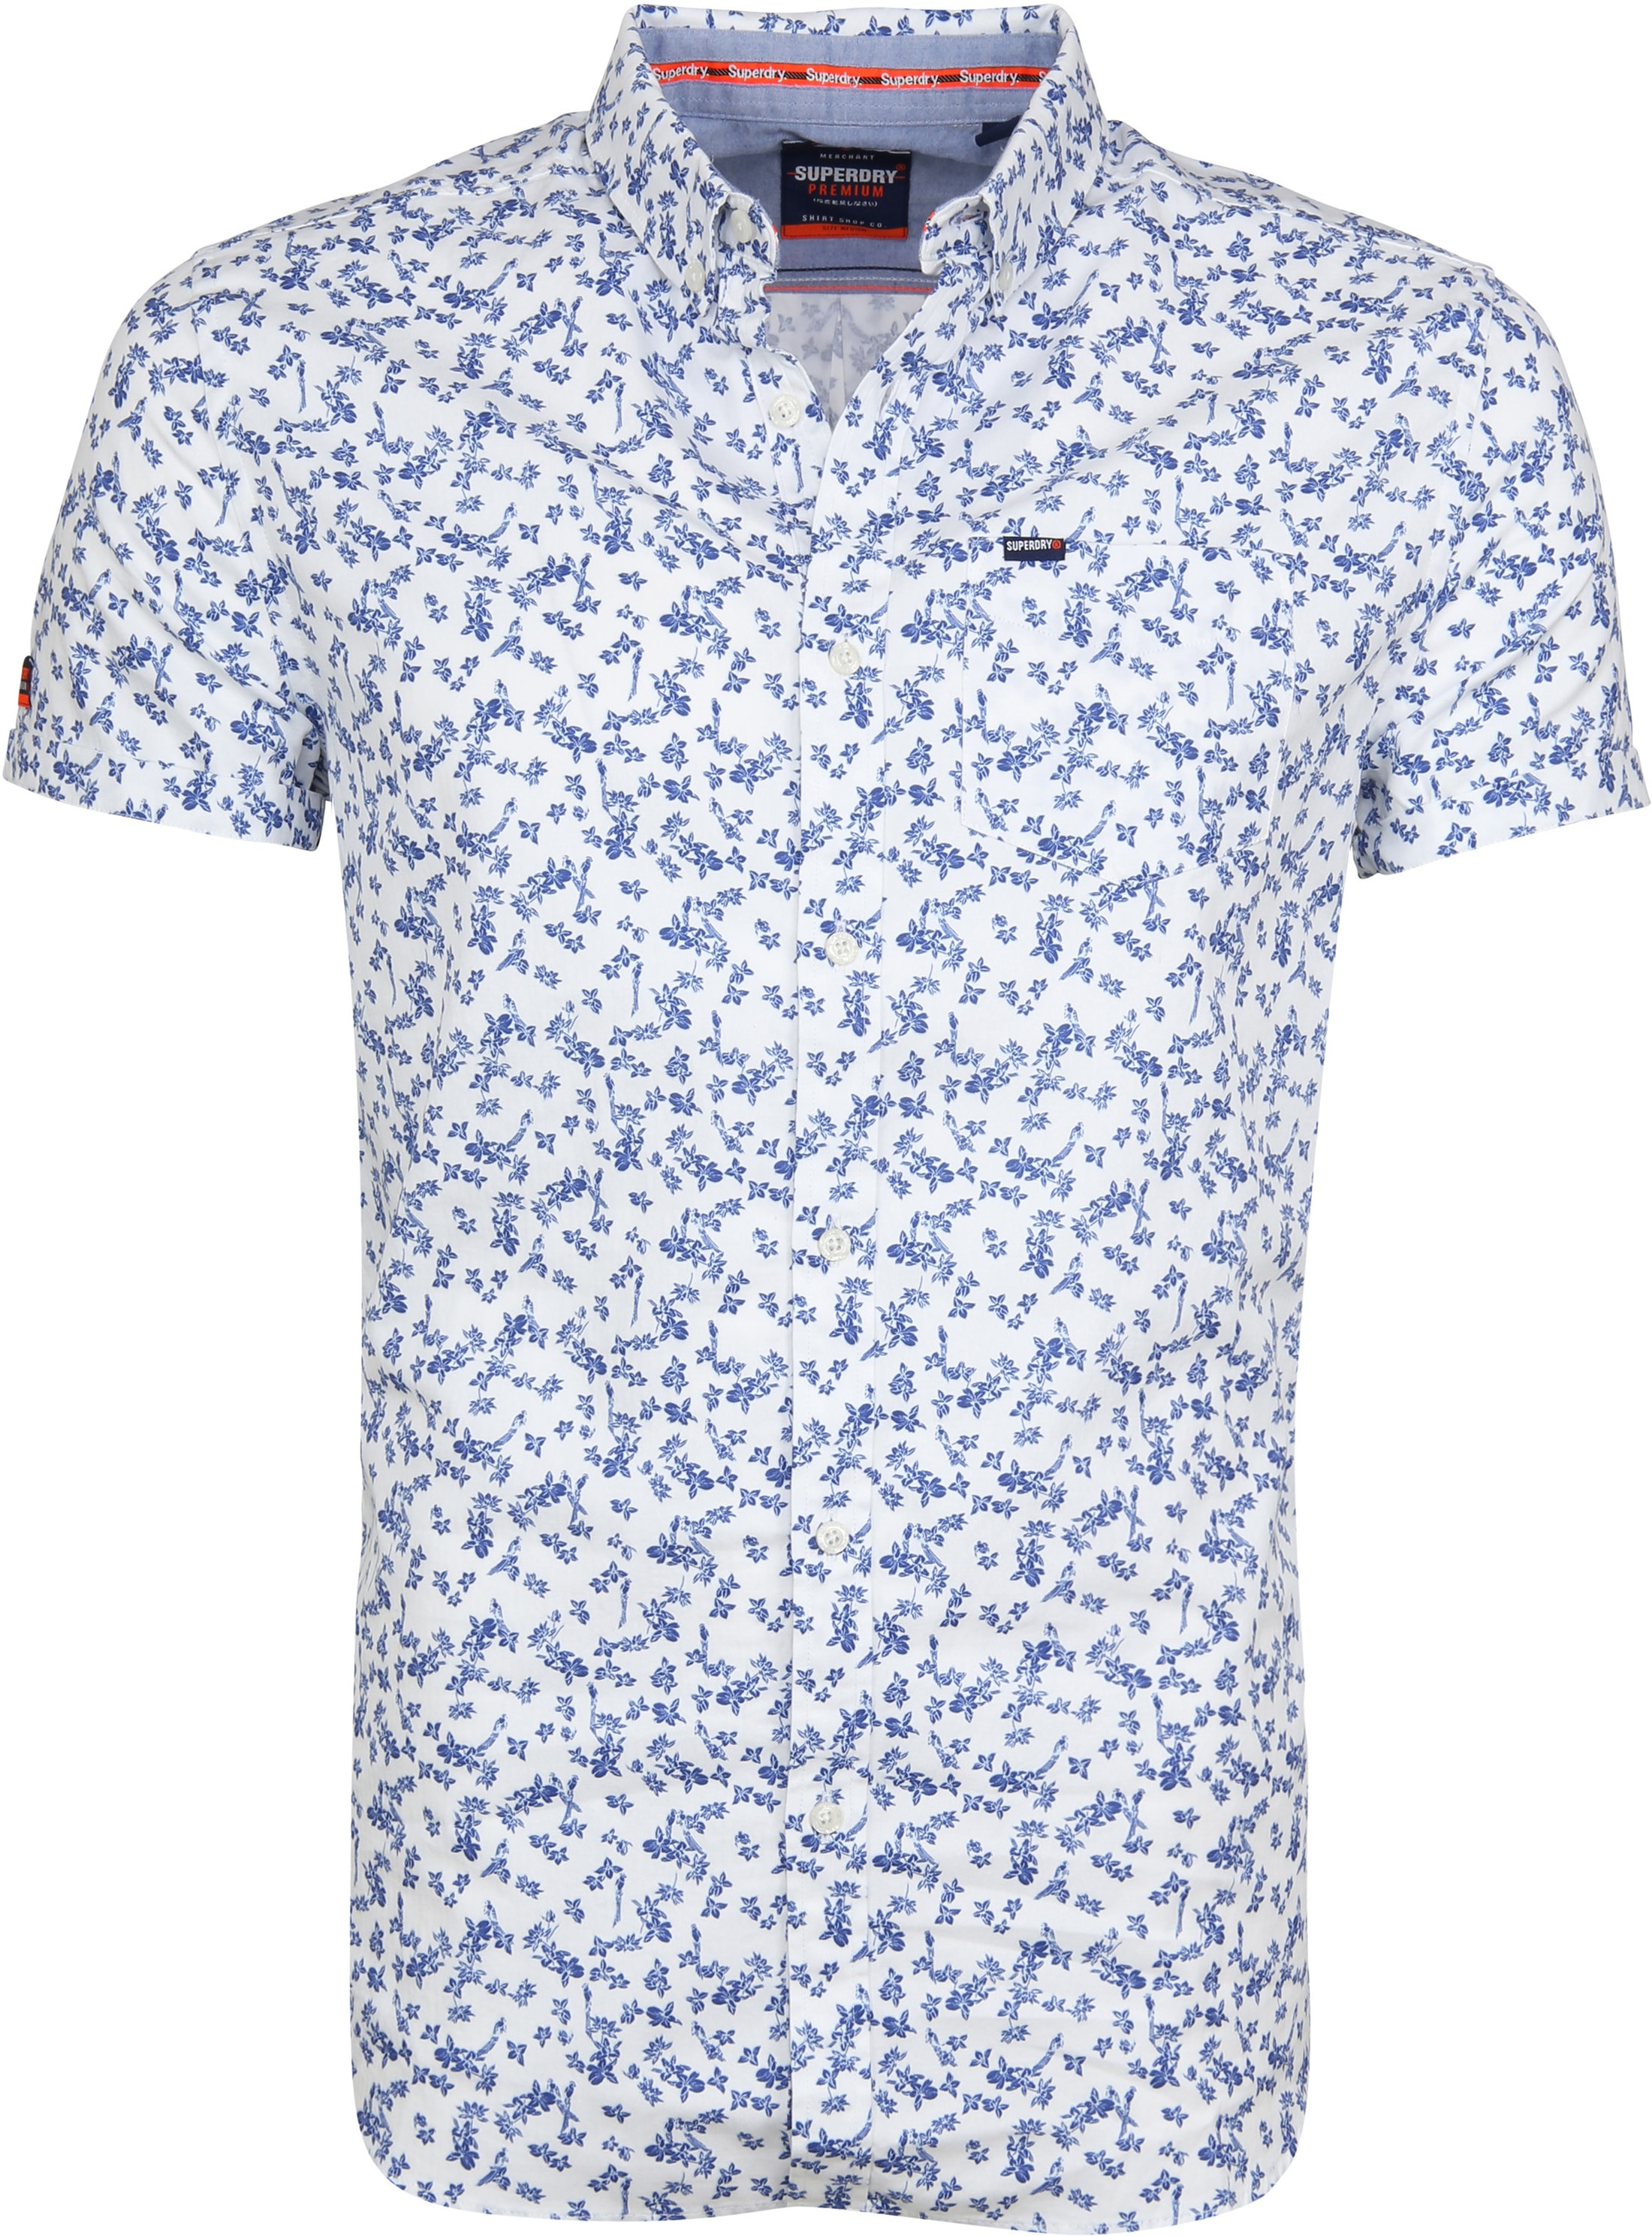 Superdry Shoreditch Shirt Flower foto 0